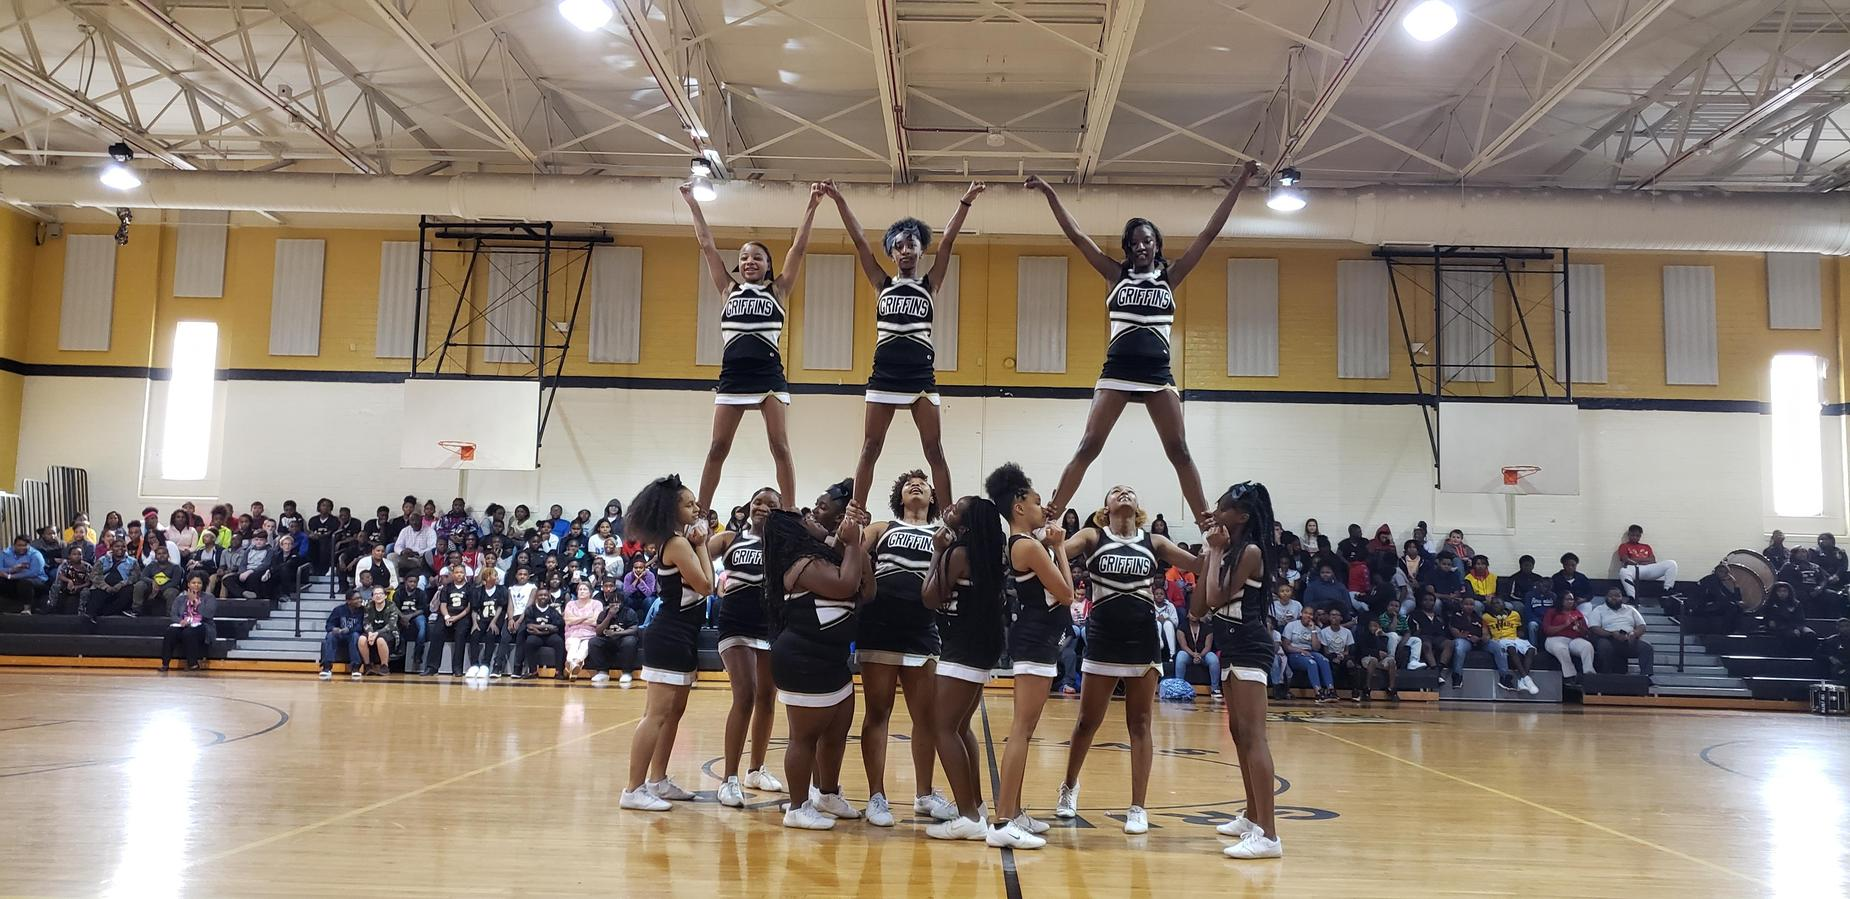 Cheerleaders in a pyramid at Pep Rally